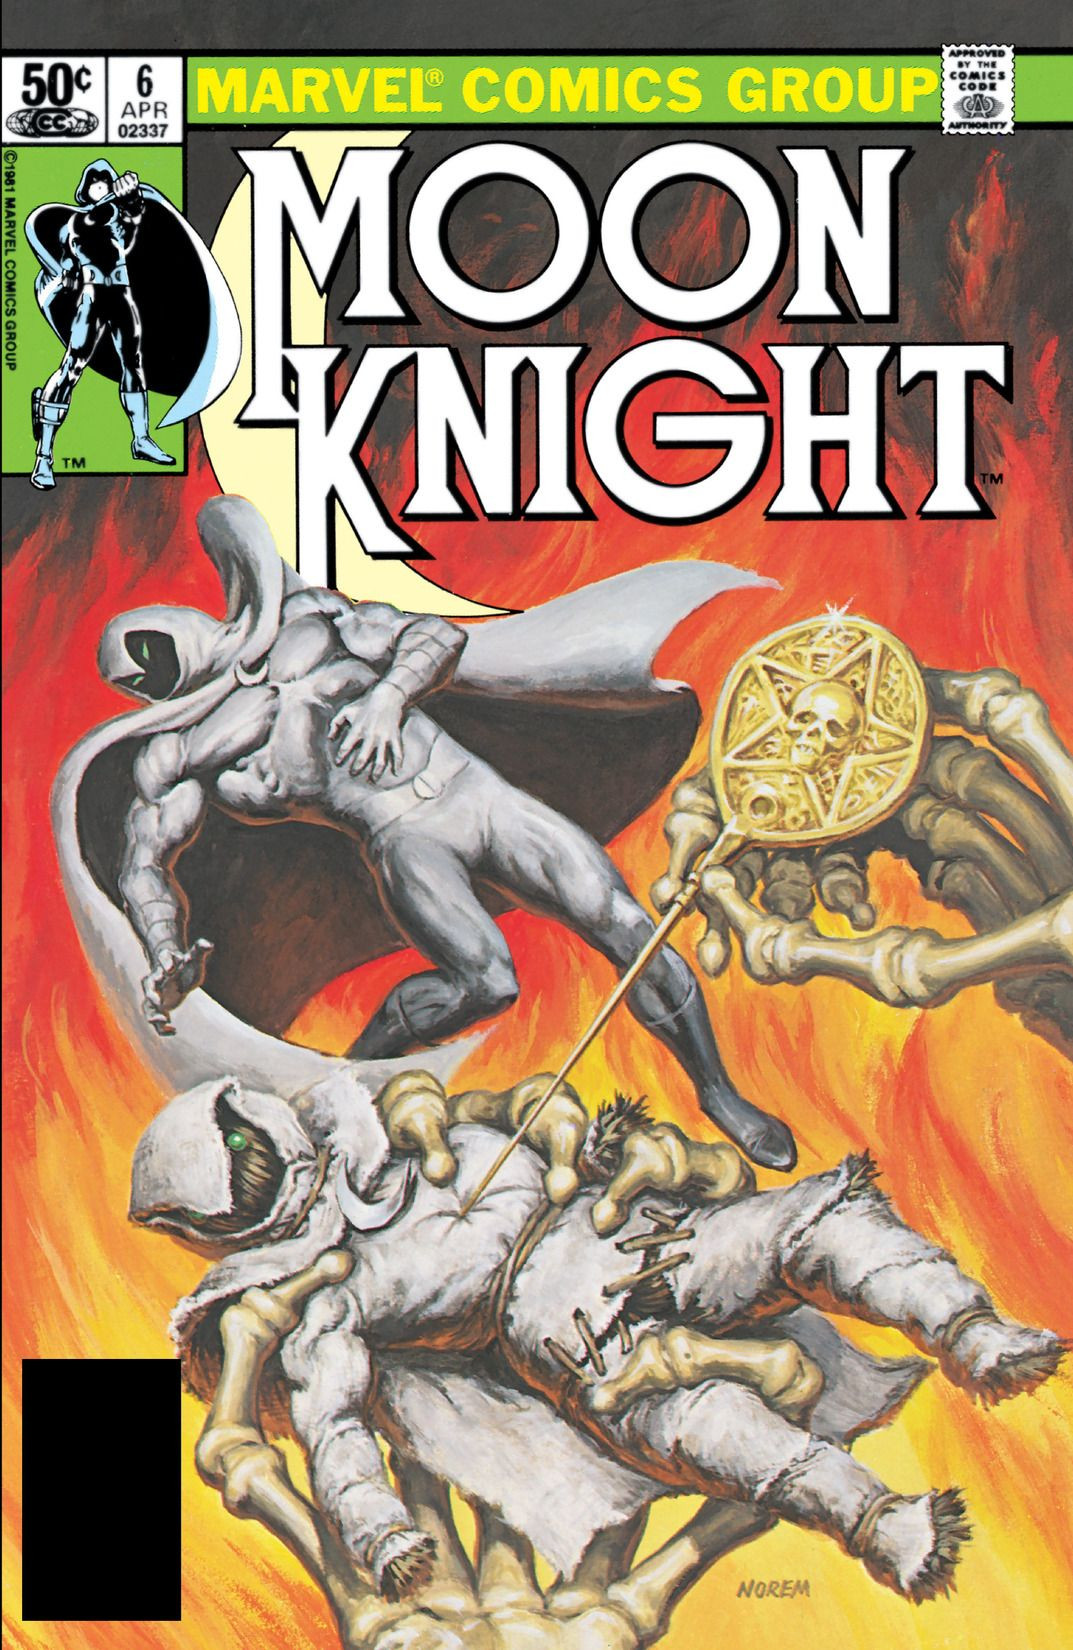 Image result for moon knight vol 1 issue 6